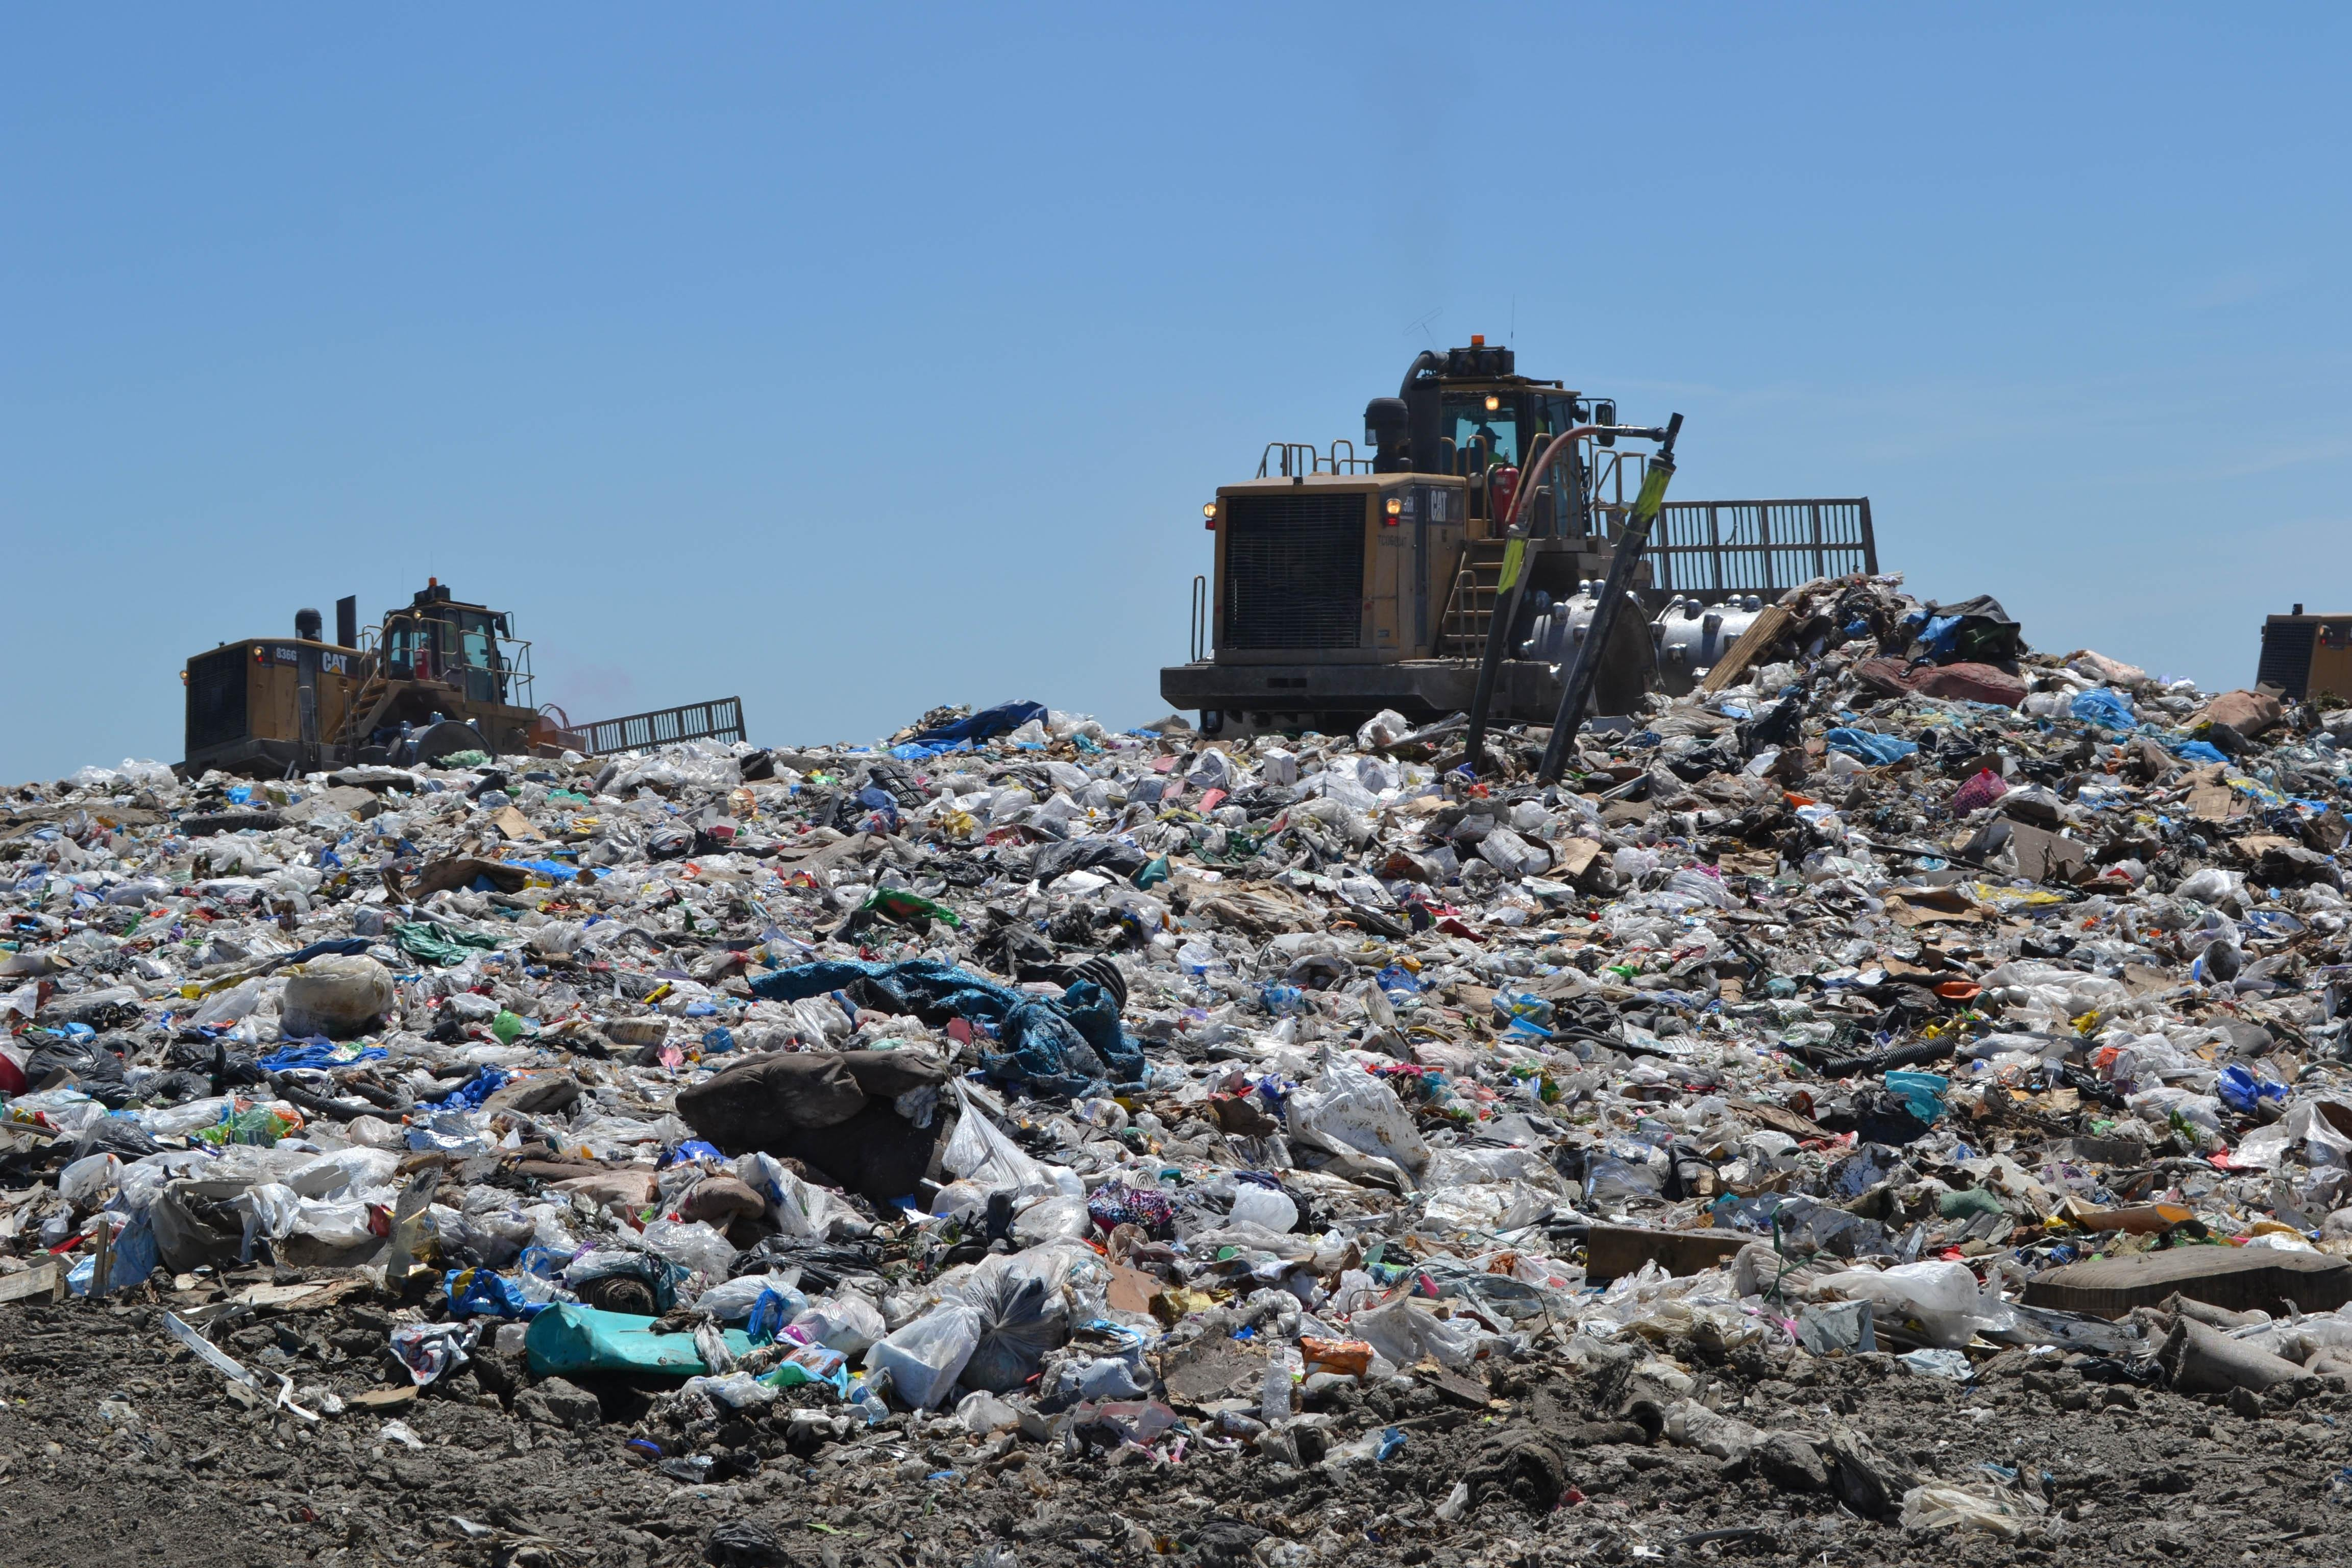 About 5,000 tons of trash from Chicago and the surrounding area is dumped every day at the landfill.